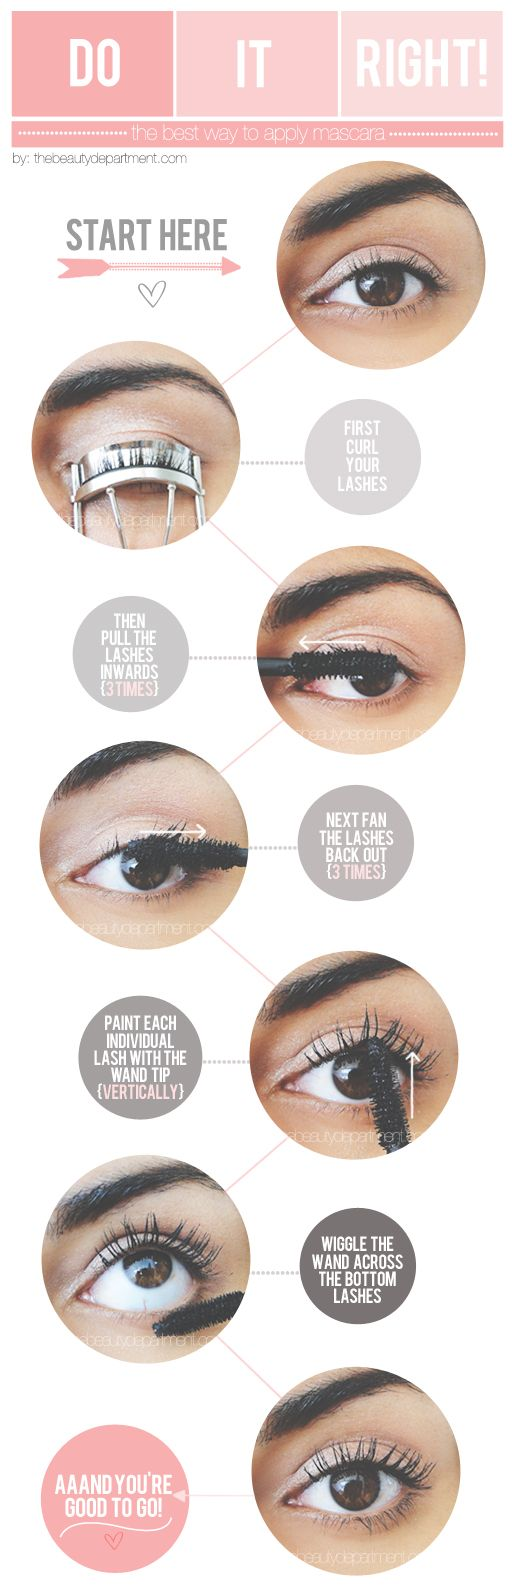 These simple techniques really coat and direct each lash for the best mascara application!